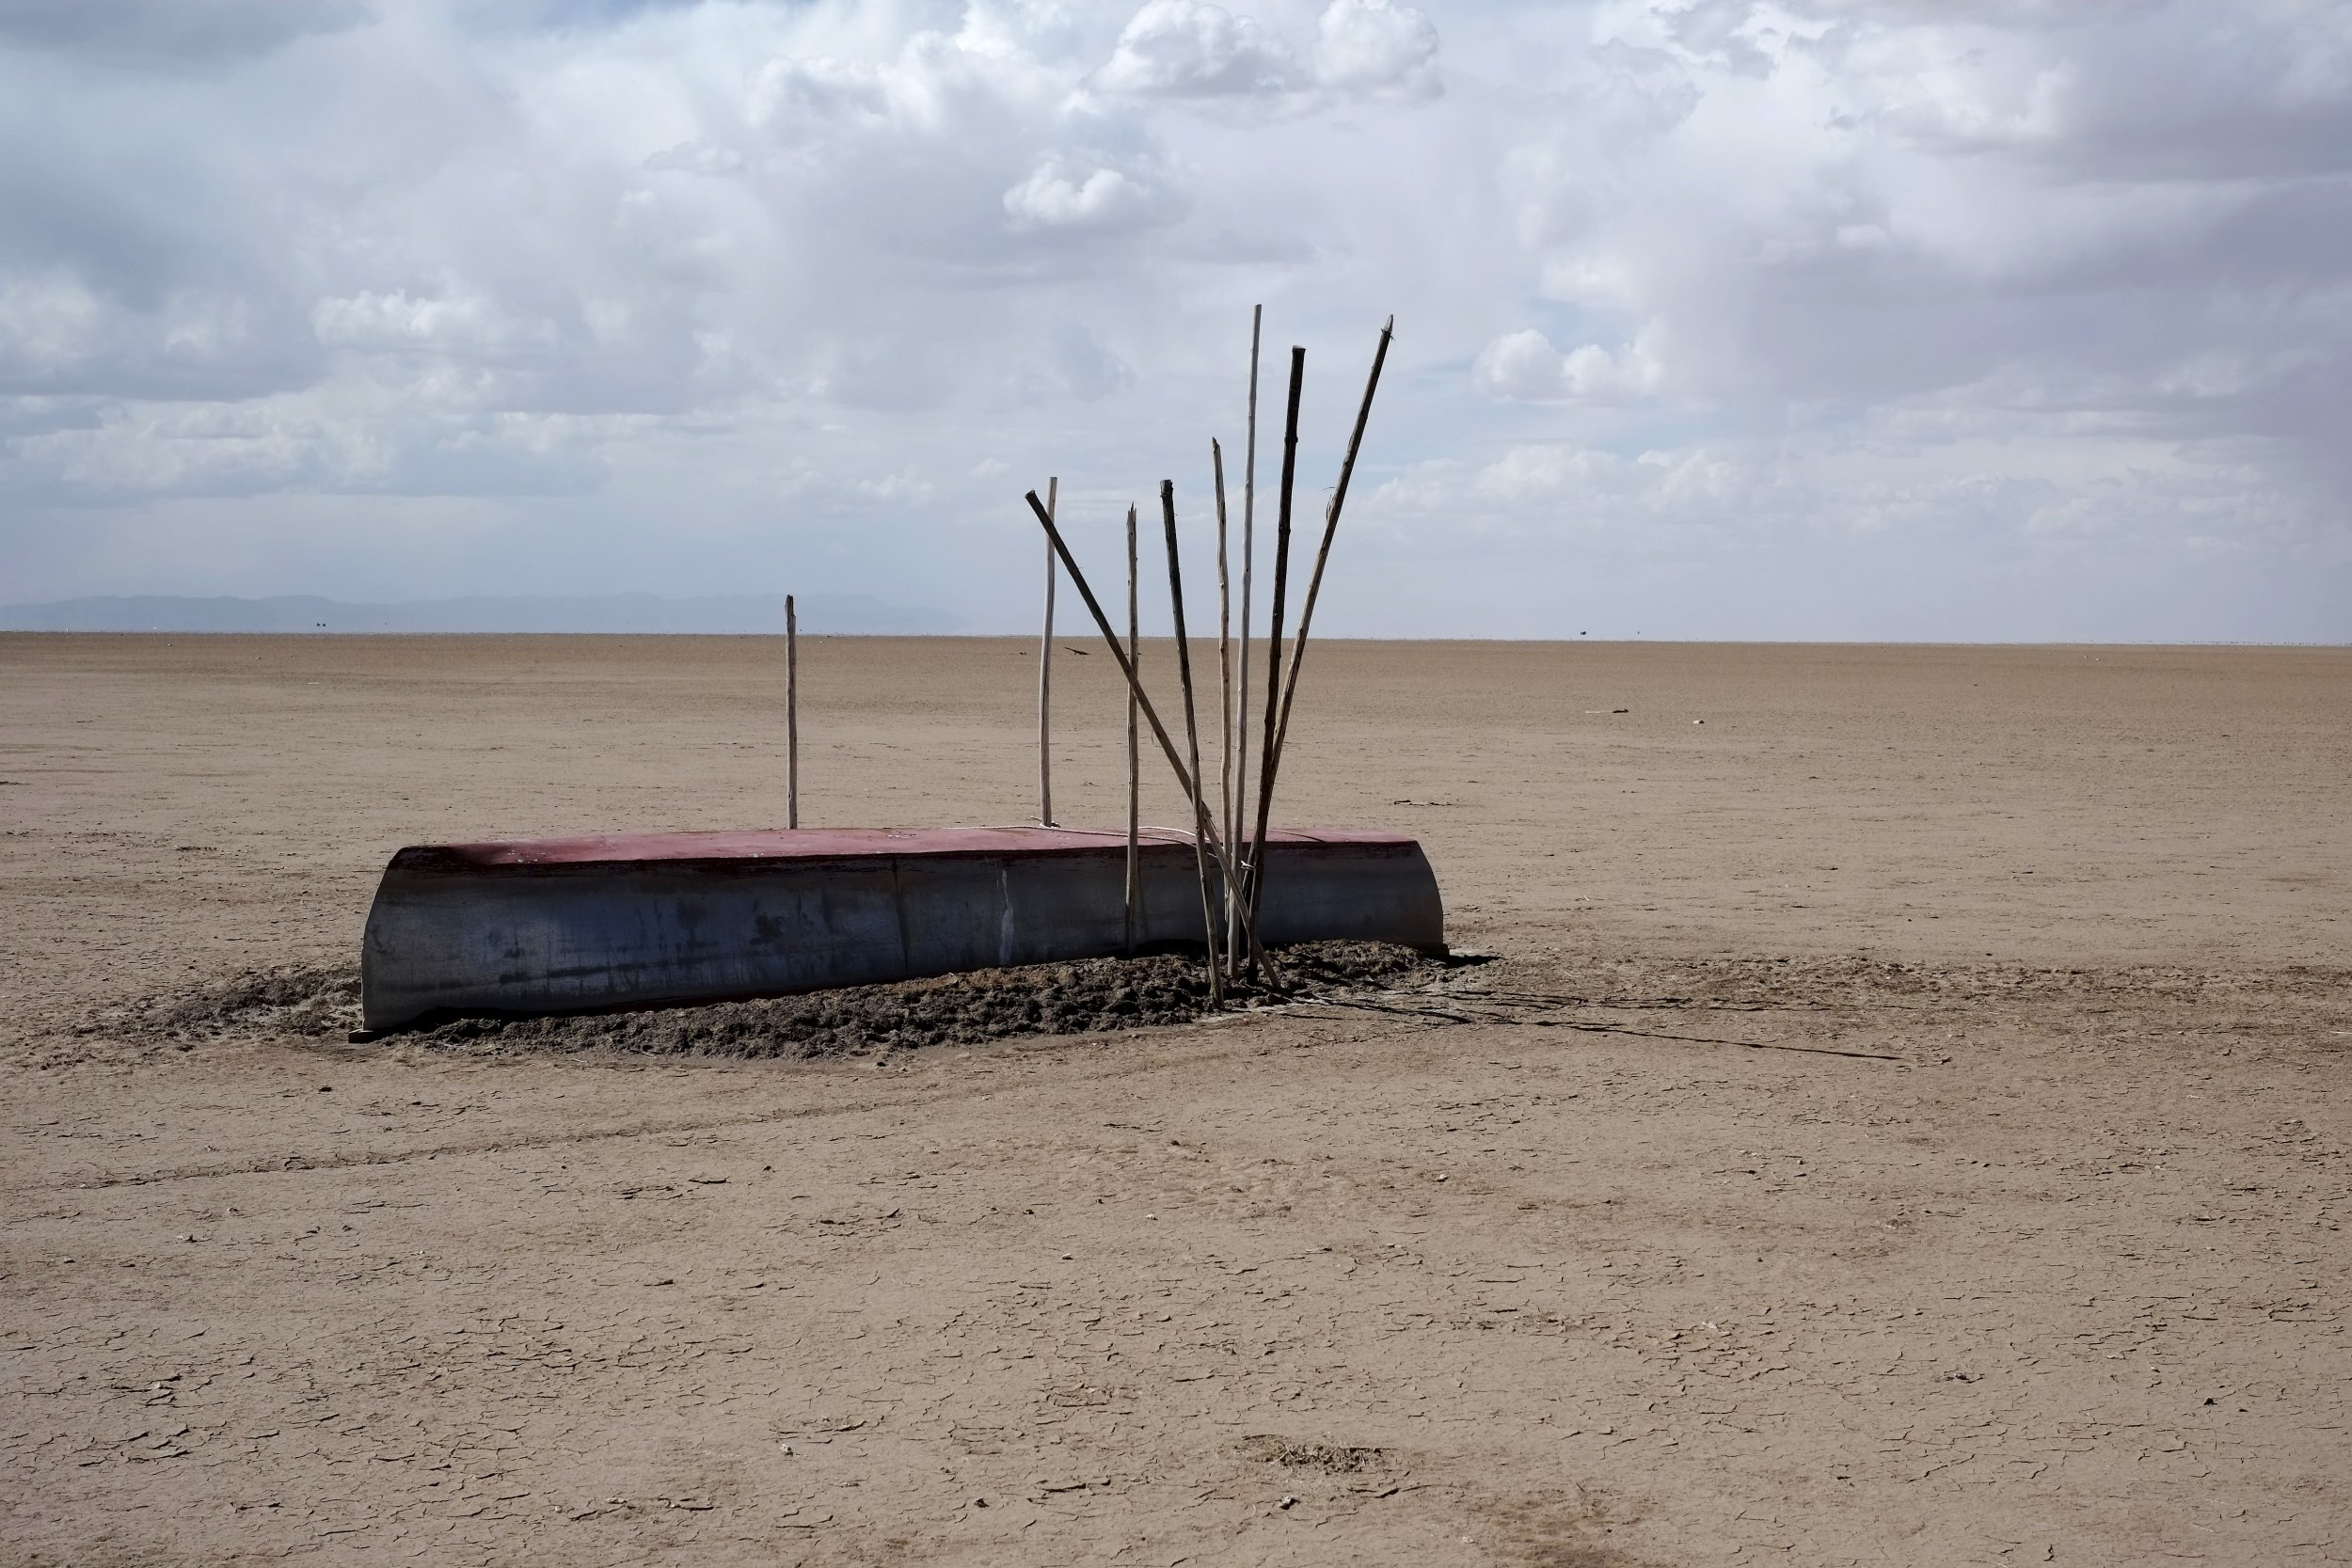 Dried up fishing industry